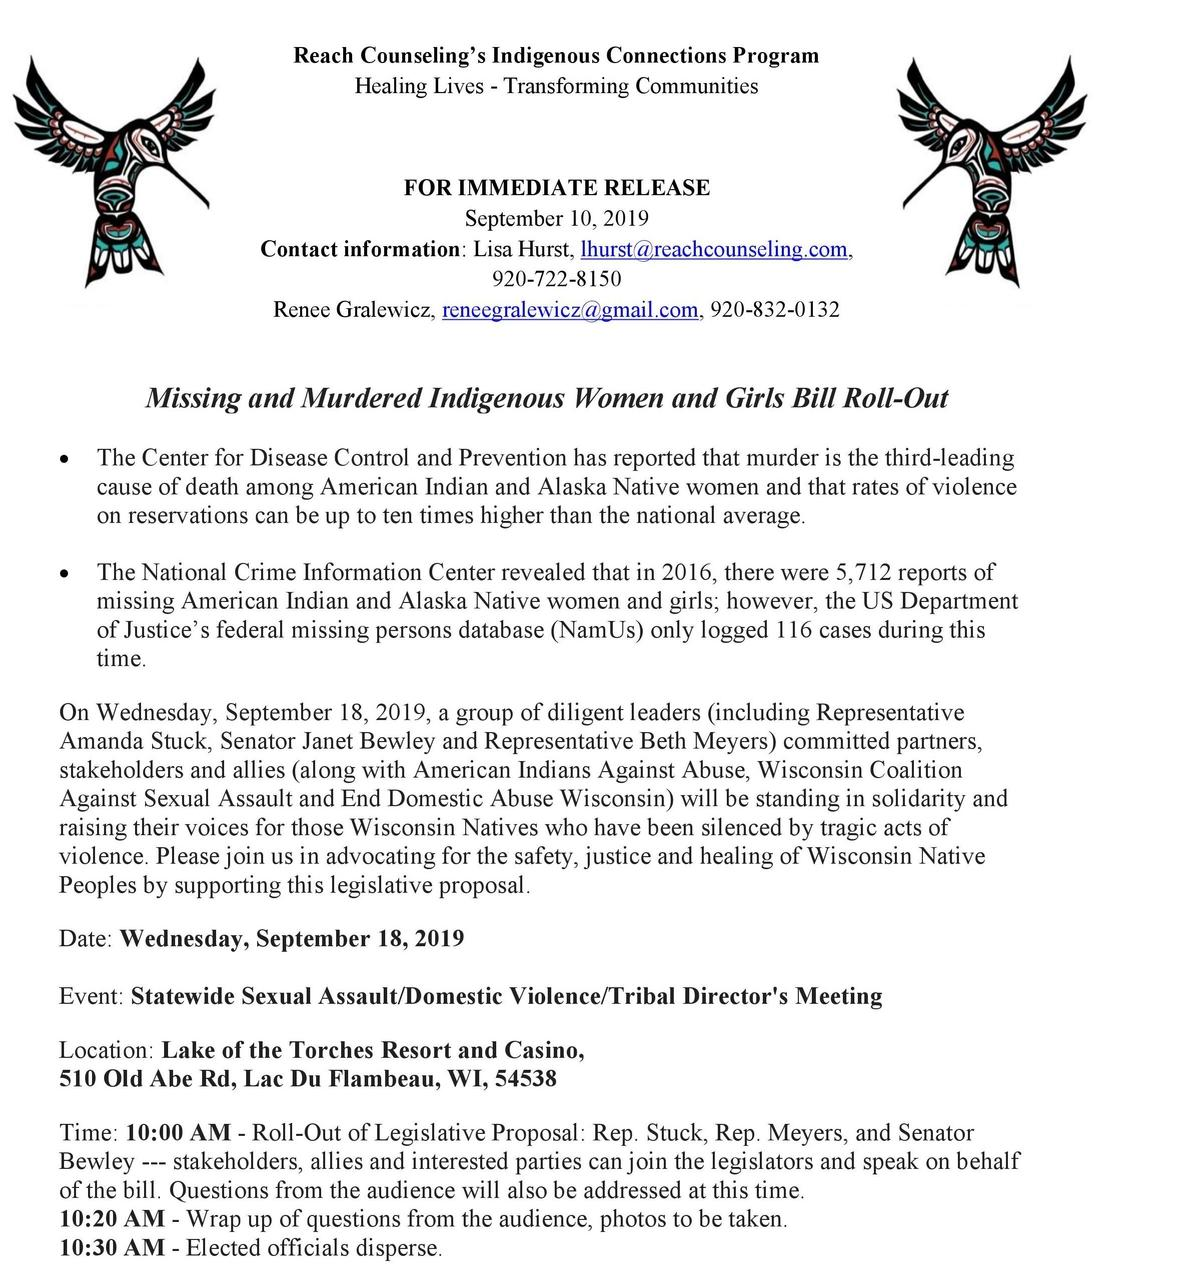 Missing and Murdered Indigenous Women and Girls Bill Roll-Out